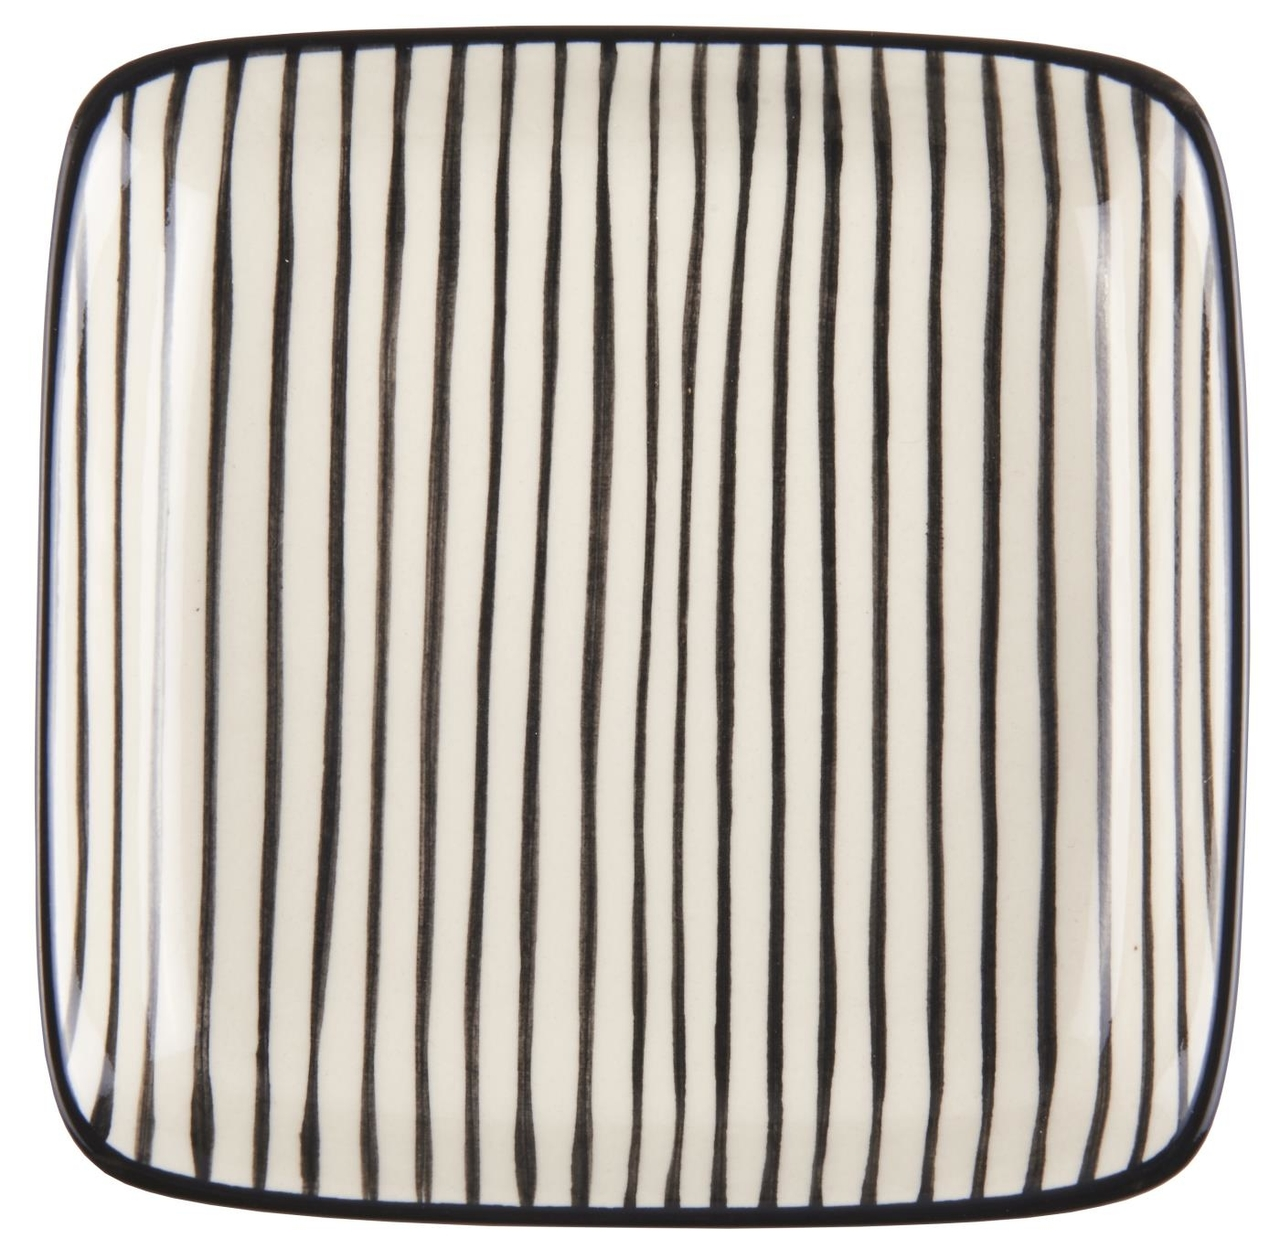 Ib Laursen Teller mini Casablanca Stripes